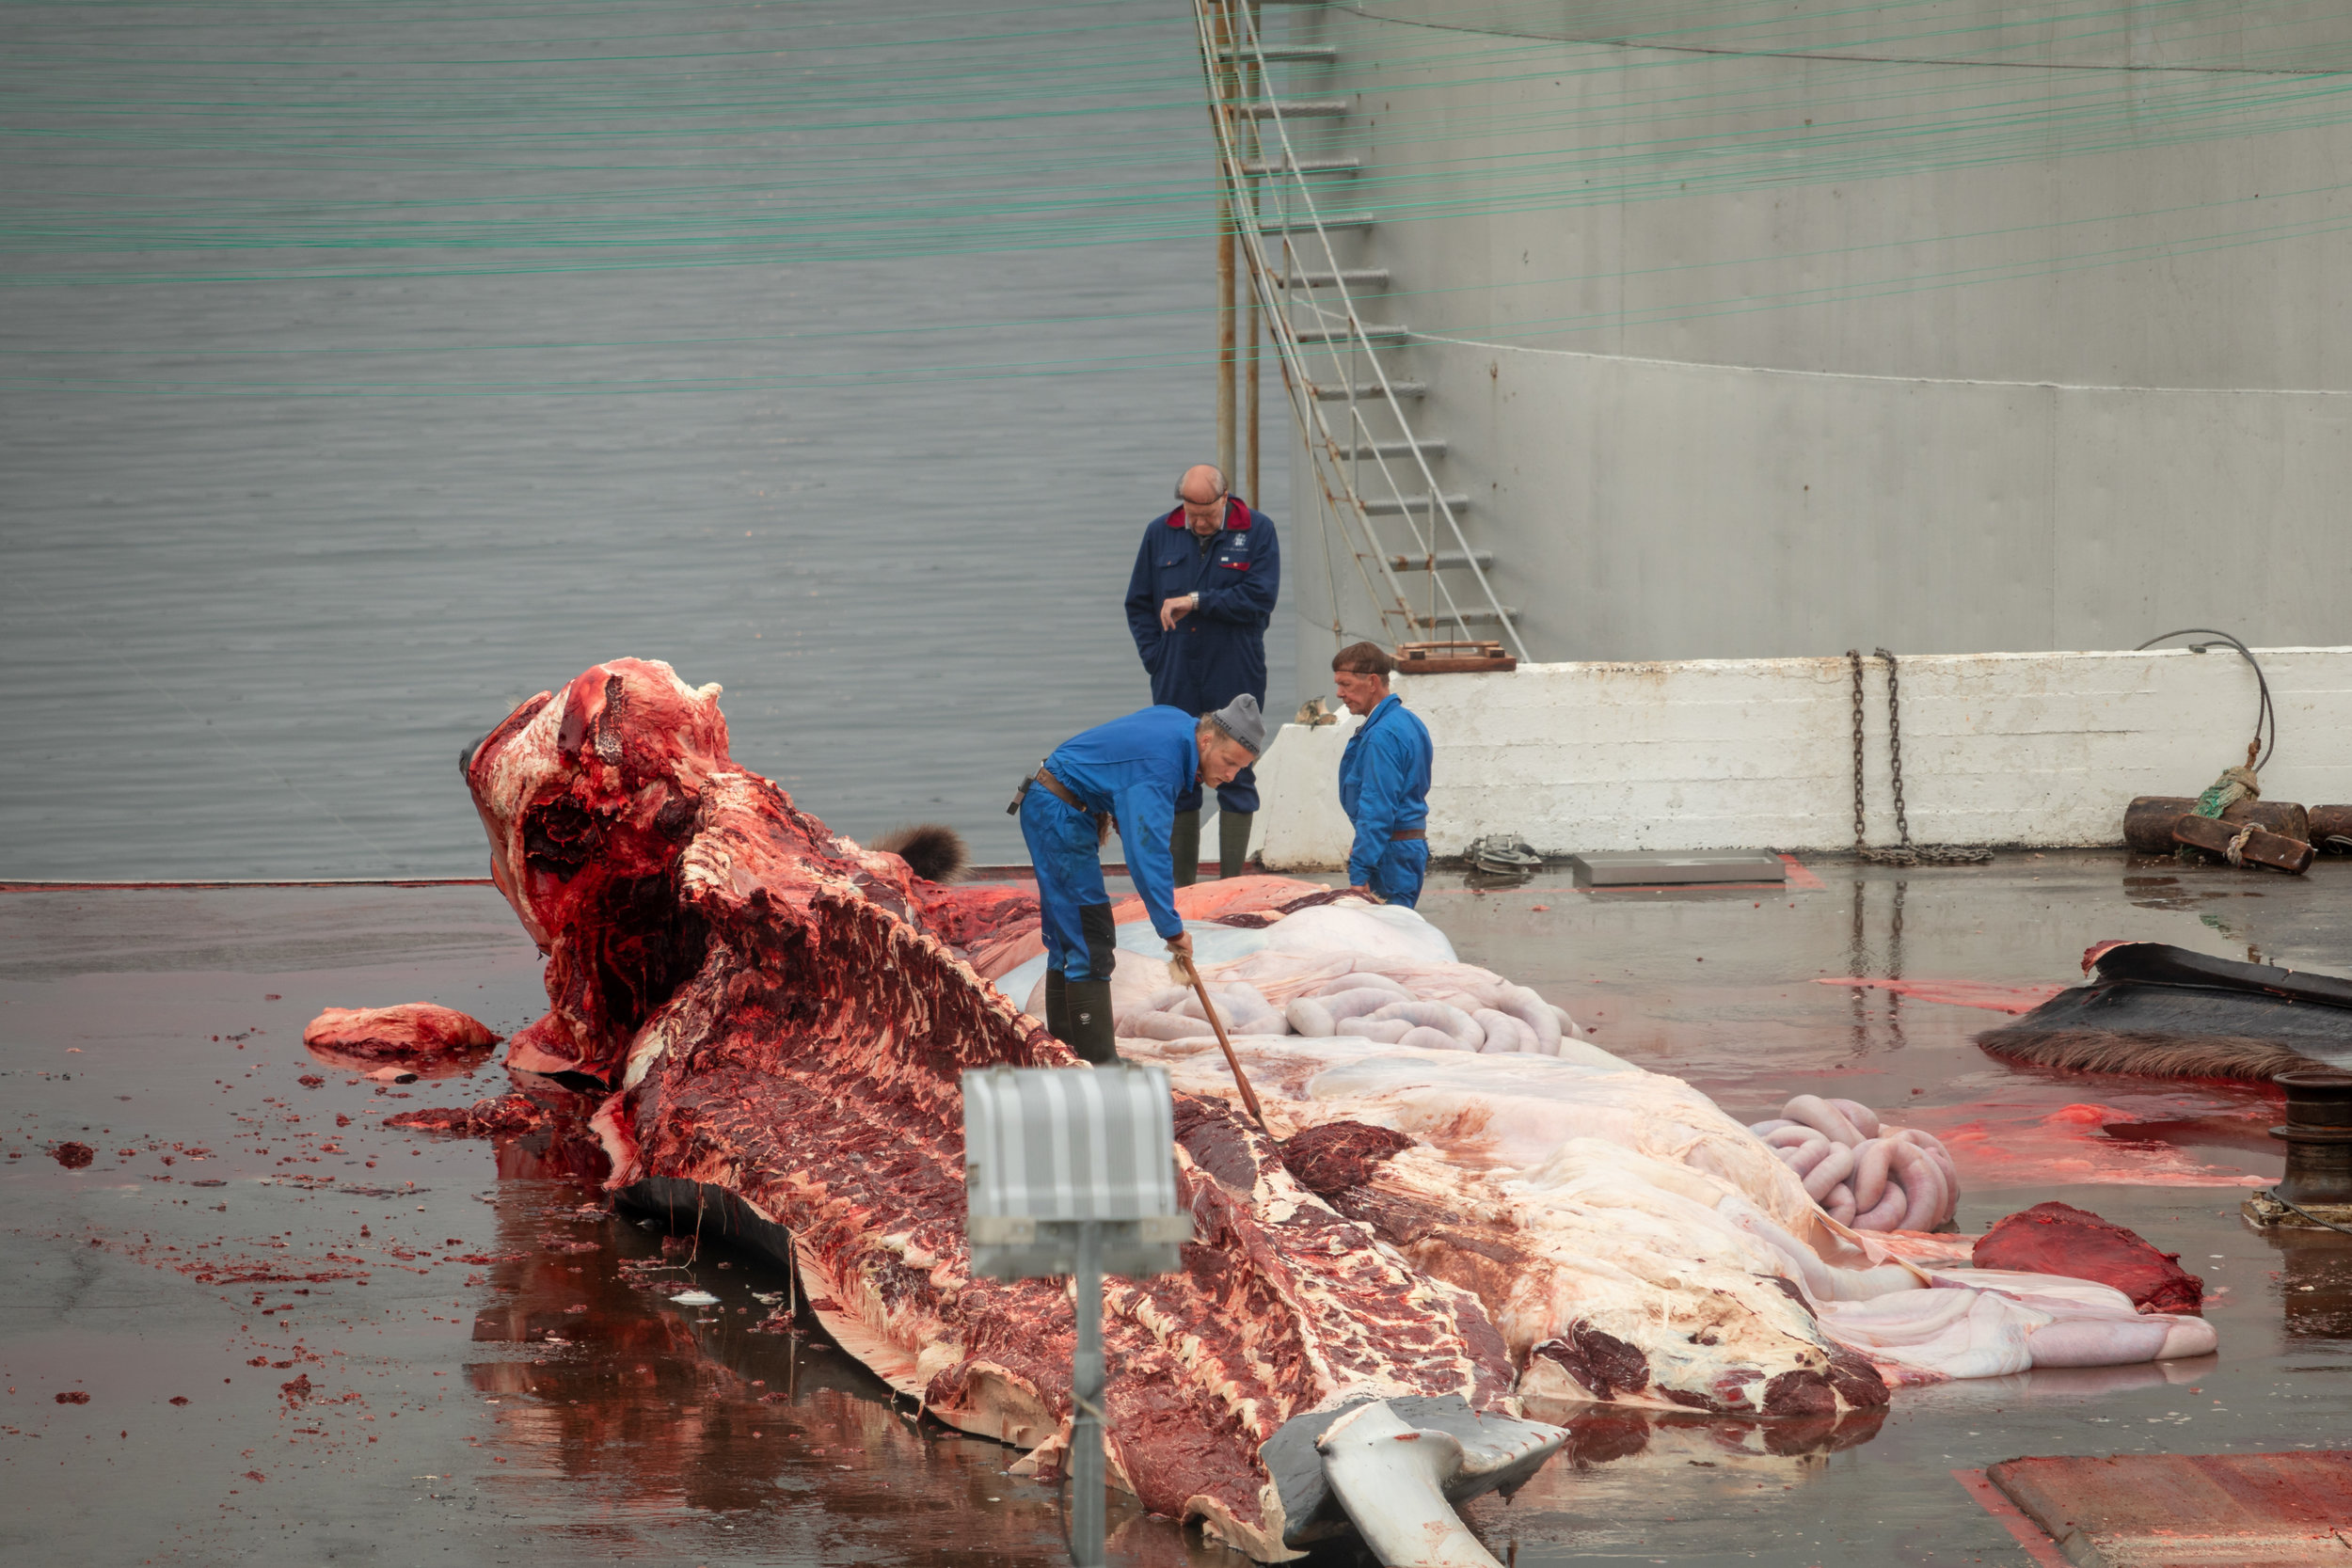 A worker checking his watch. It takes surprisingly little time to take apart a whale that may weigh 80 tonnes.